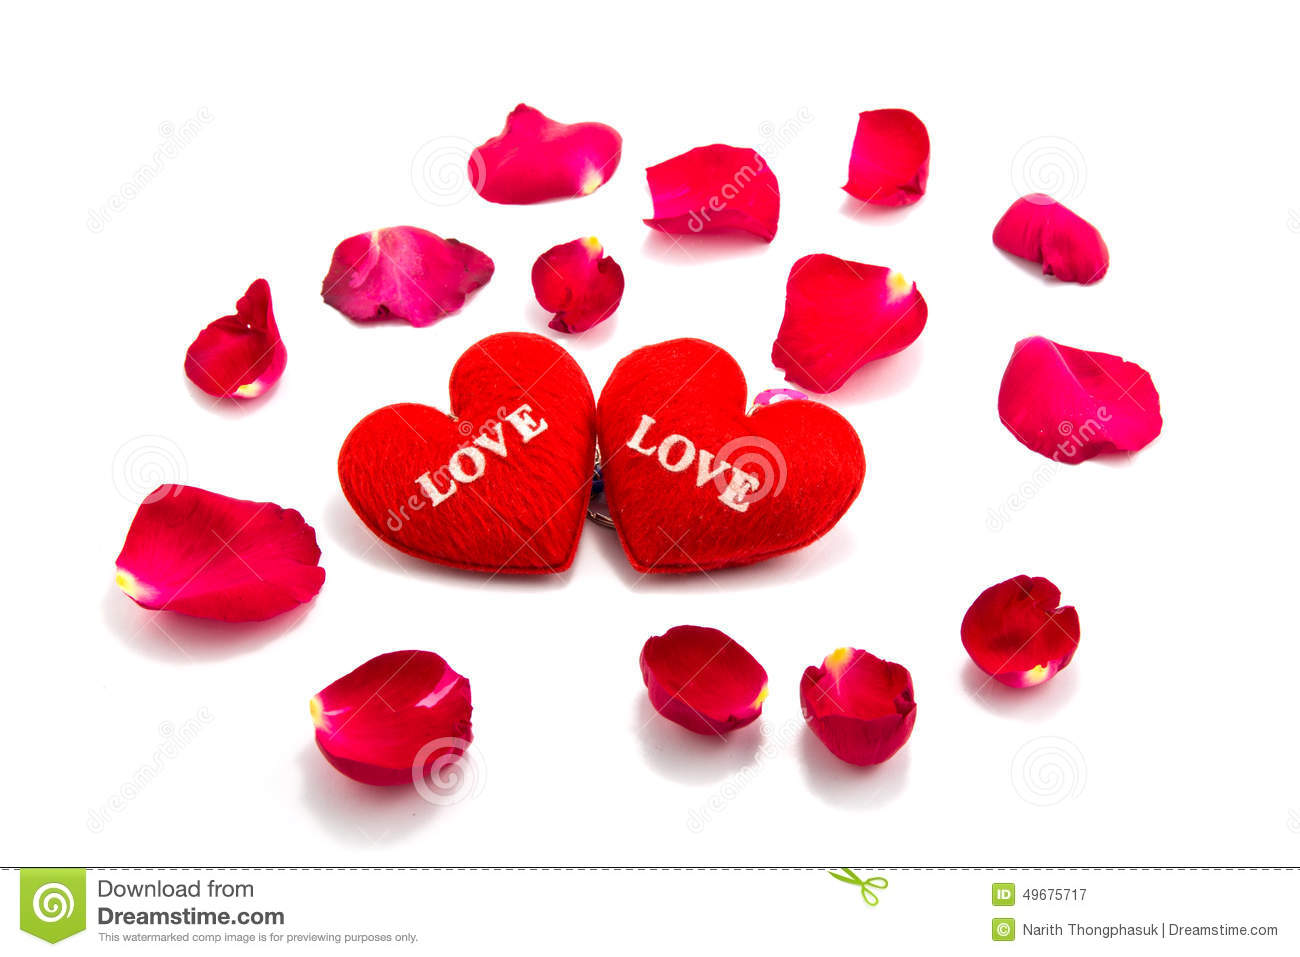 Heart as a symbol of love with rose valentins day stock image heart as a symbol of love with rose valentin s day biocorpaavc Images